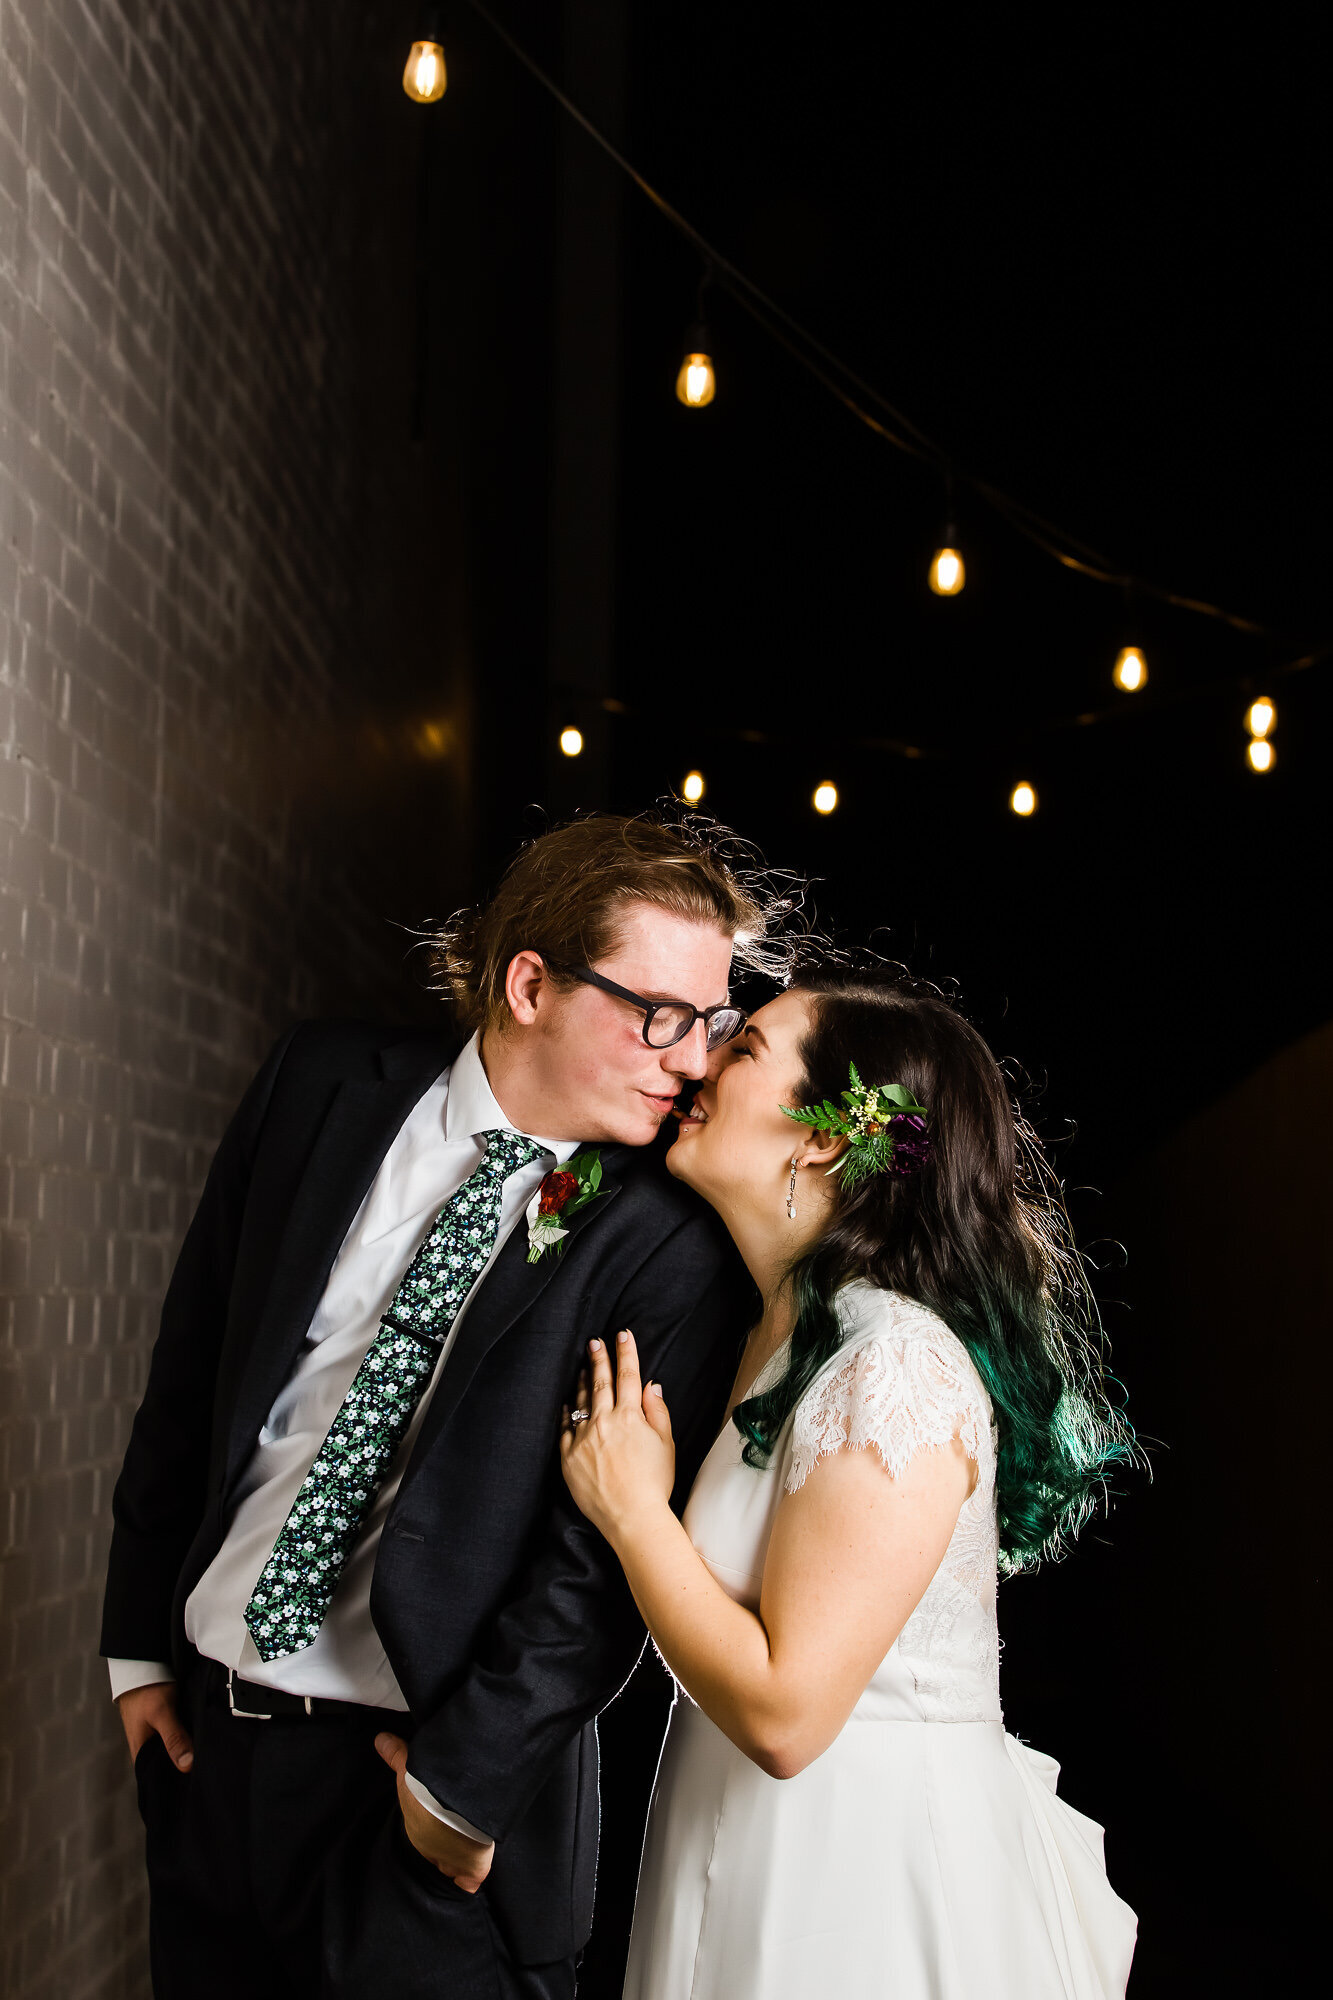 Bride and groom kissing at the wedding reception at Wild Carrot in Saint Louis